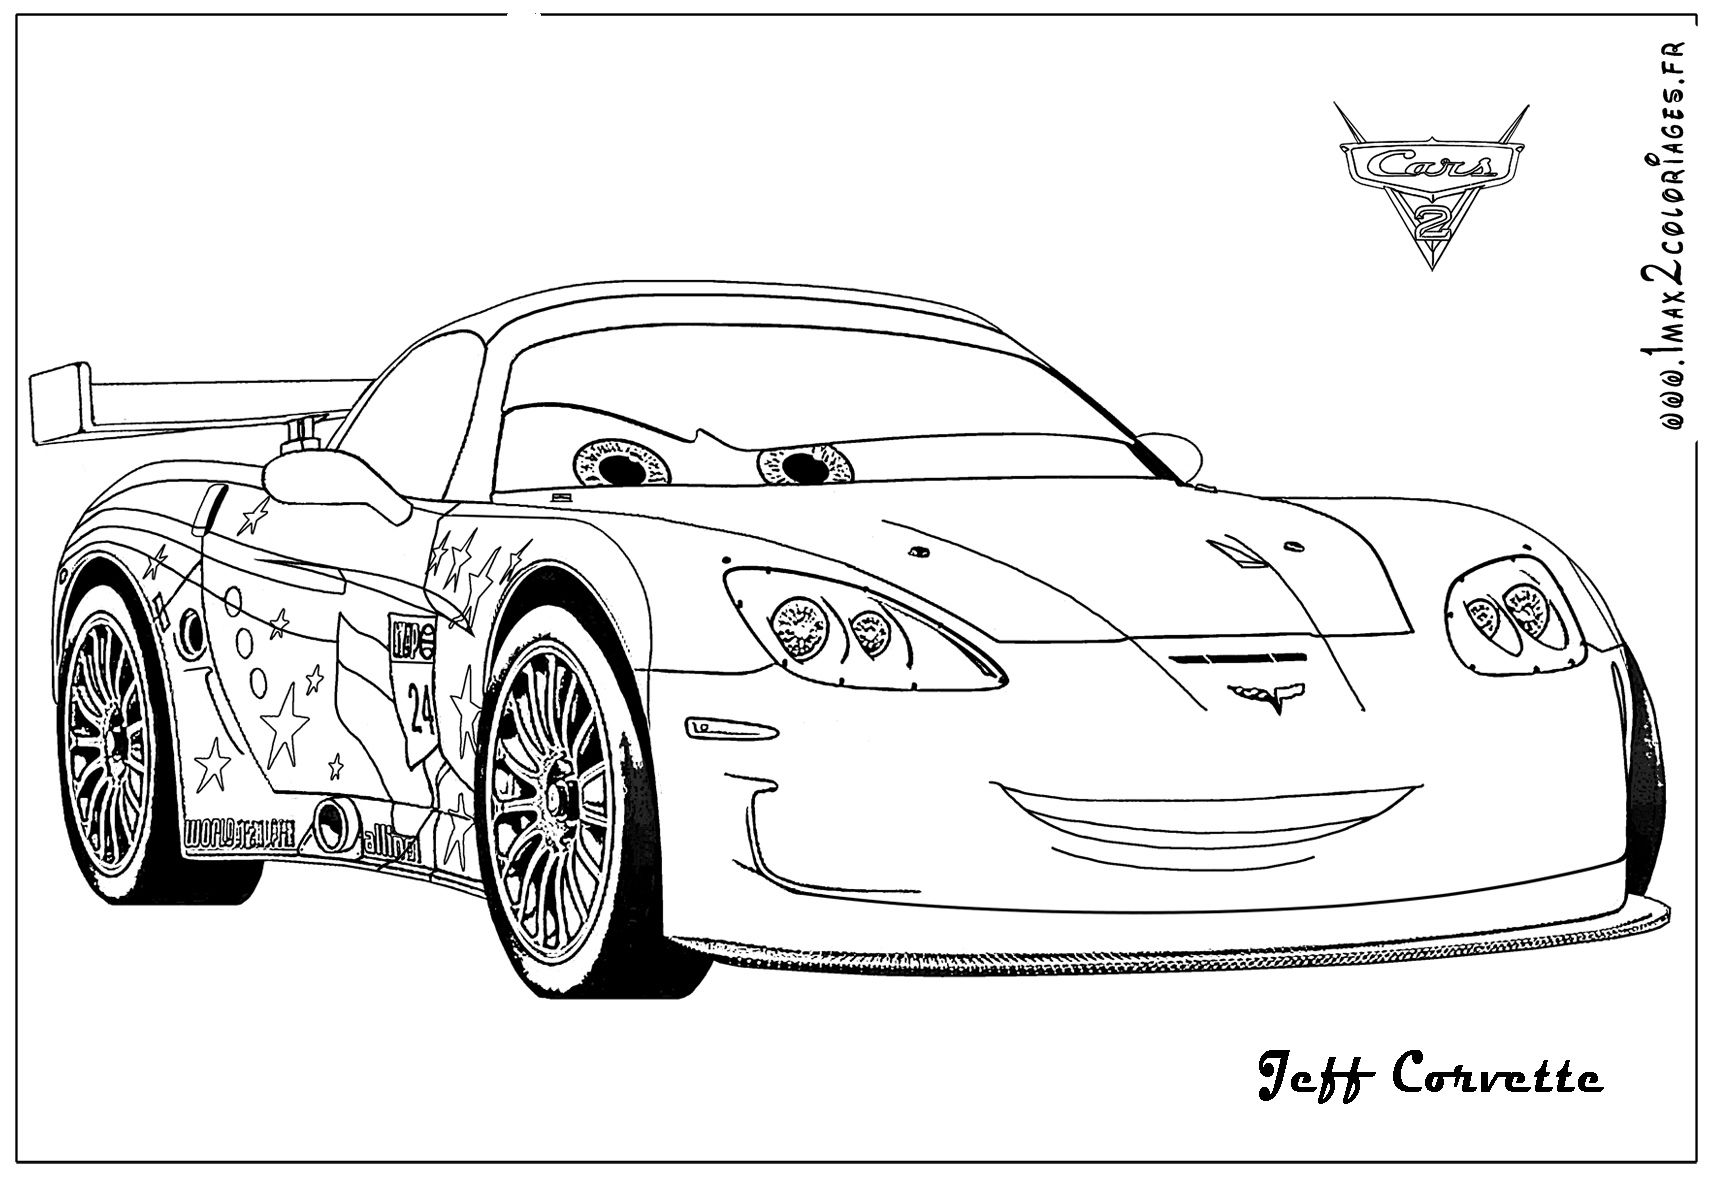 Cars 2 Jeff Corvette Coloring Page Coloring Pages Cars Coloring Pages Disney Cars